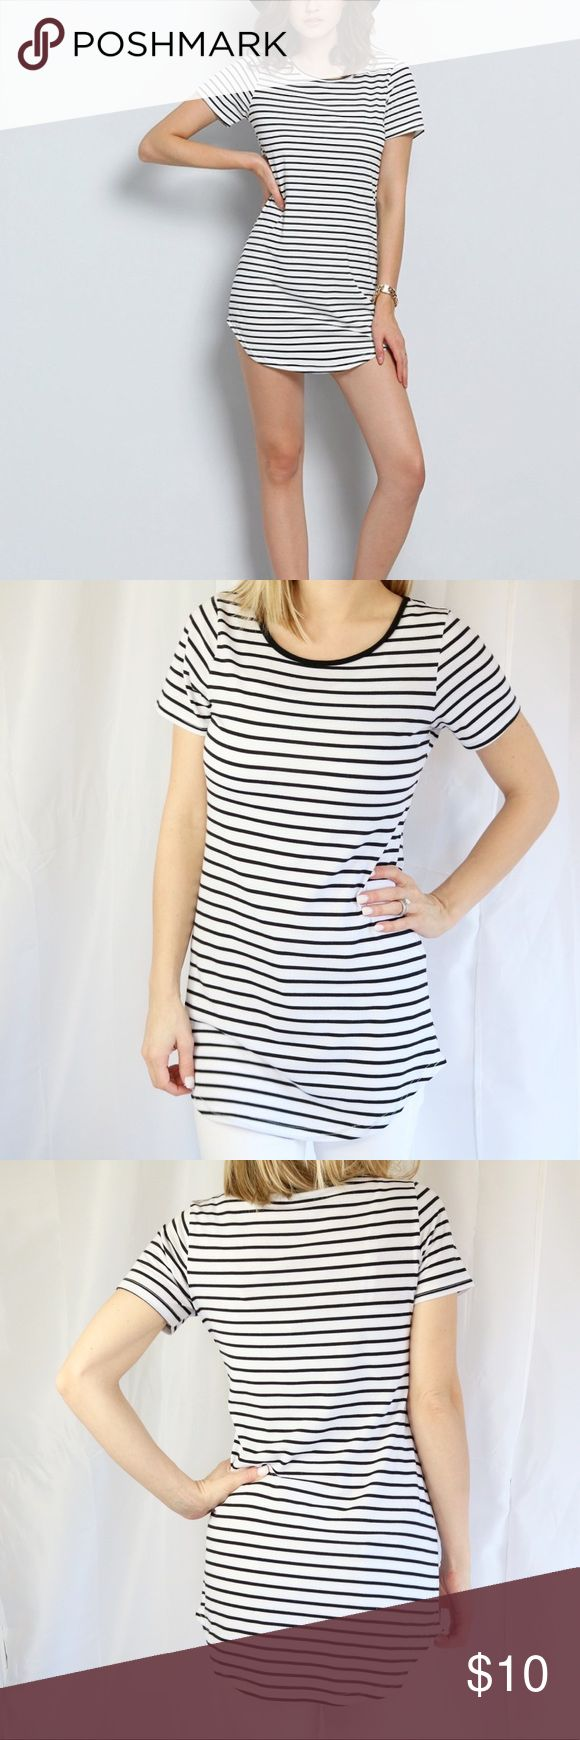 Striped Long Tee Dress Striped long tee dress Size Small Black and white Crew neck  ▪️Measurements in photos  ▪️Materials/care in photos  💜My home is smoke/pet free ROMWE Tops Tees - Short Sleeve